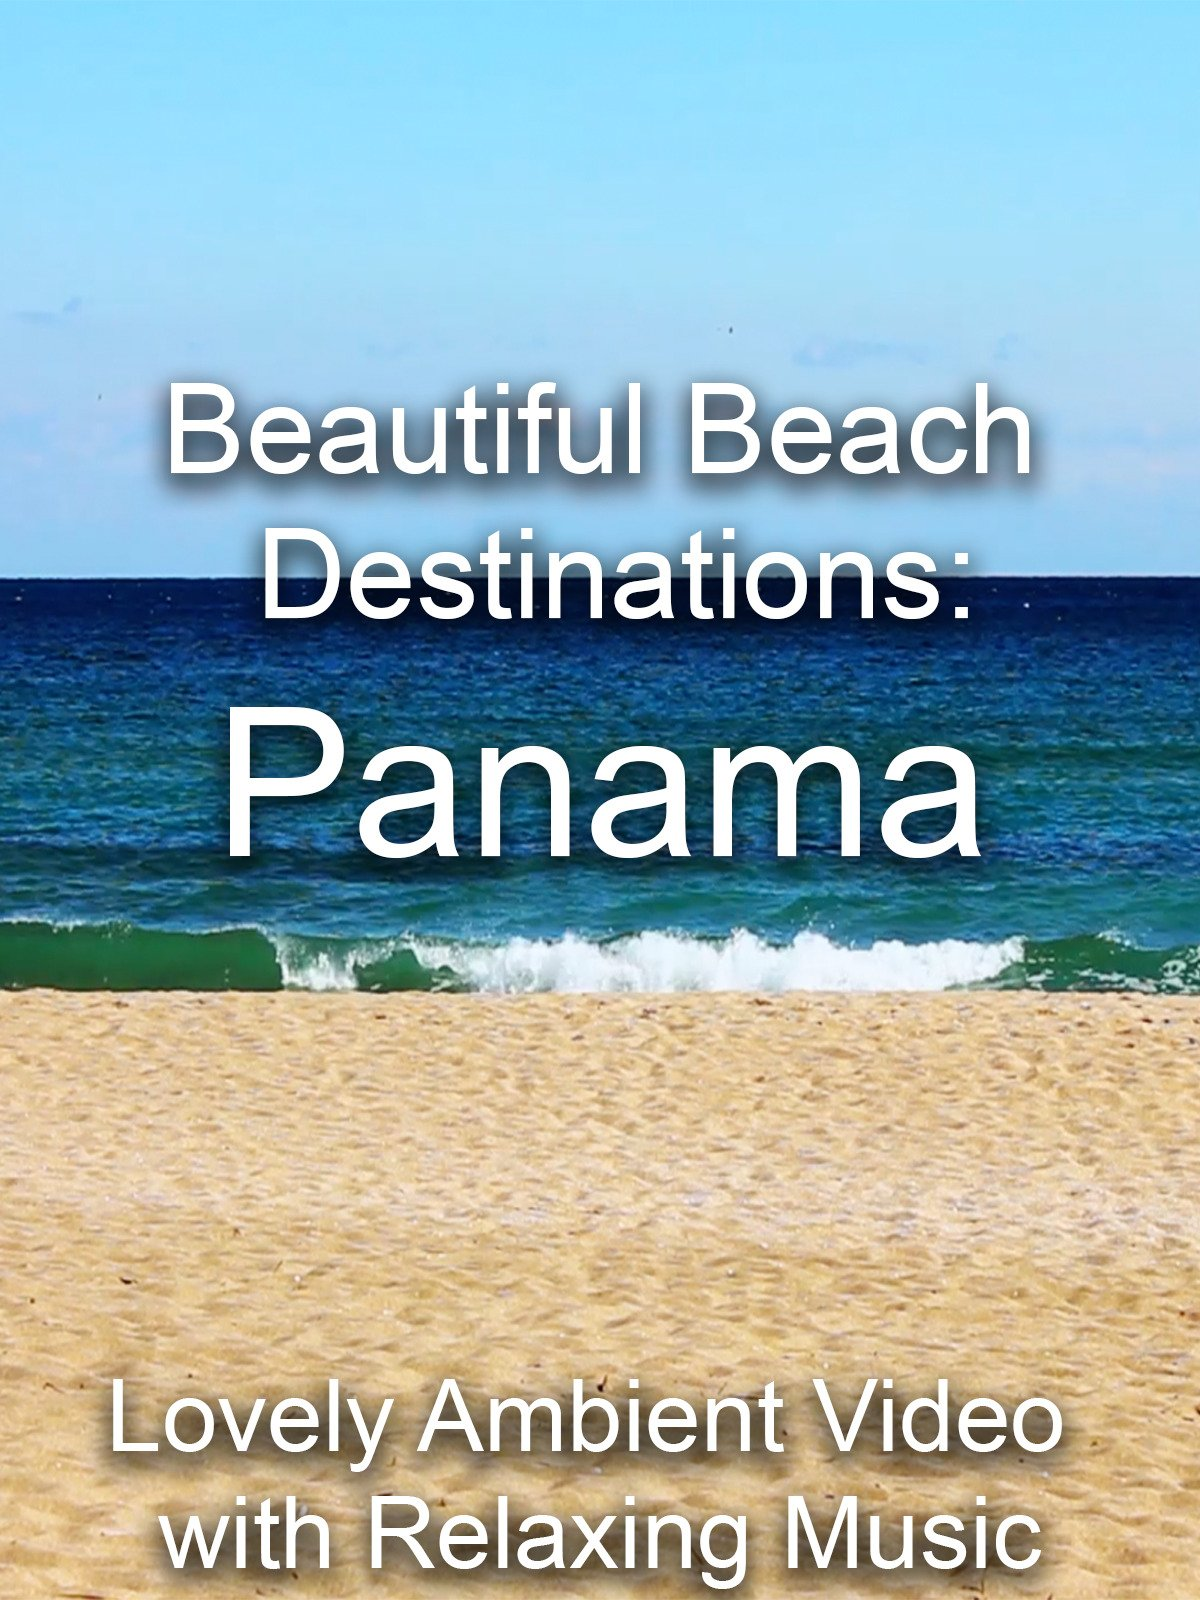 Beautiful Beach Destinations: Panama Lovely Ambient Video with Relaxing Music